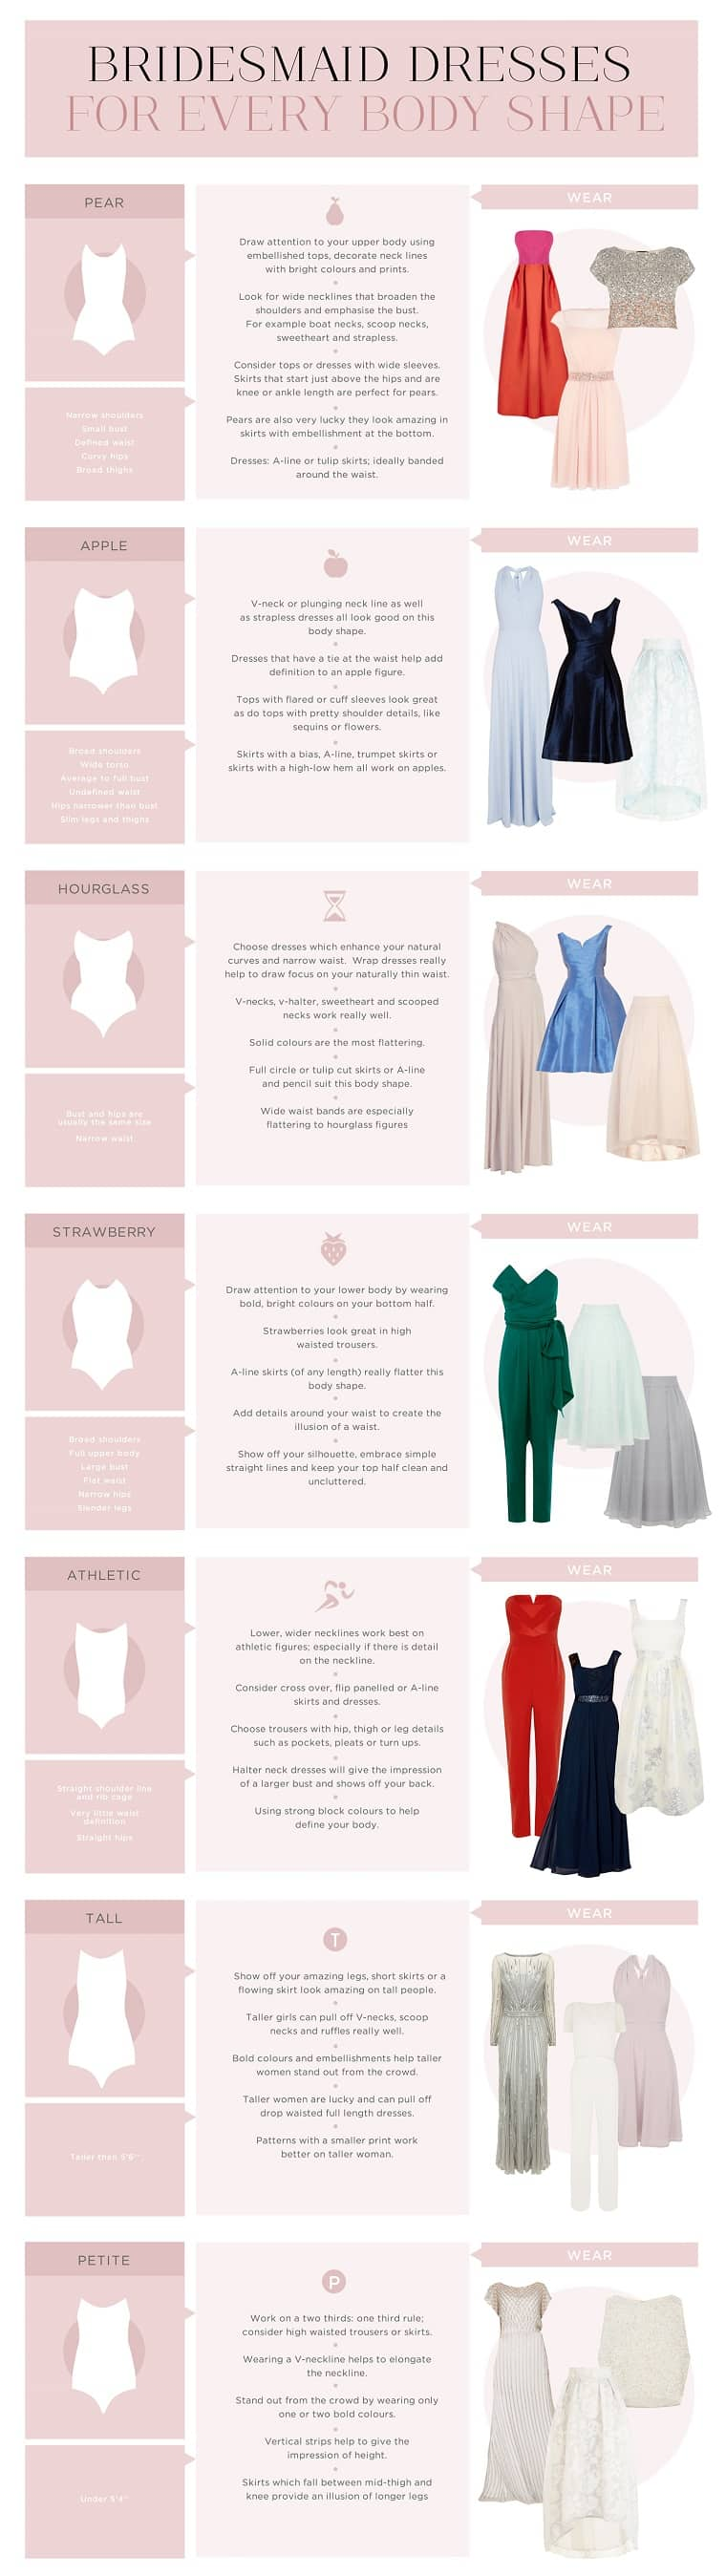 bridesmaid-body-shape-infographic-completed-(3)